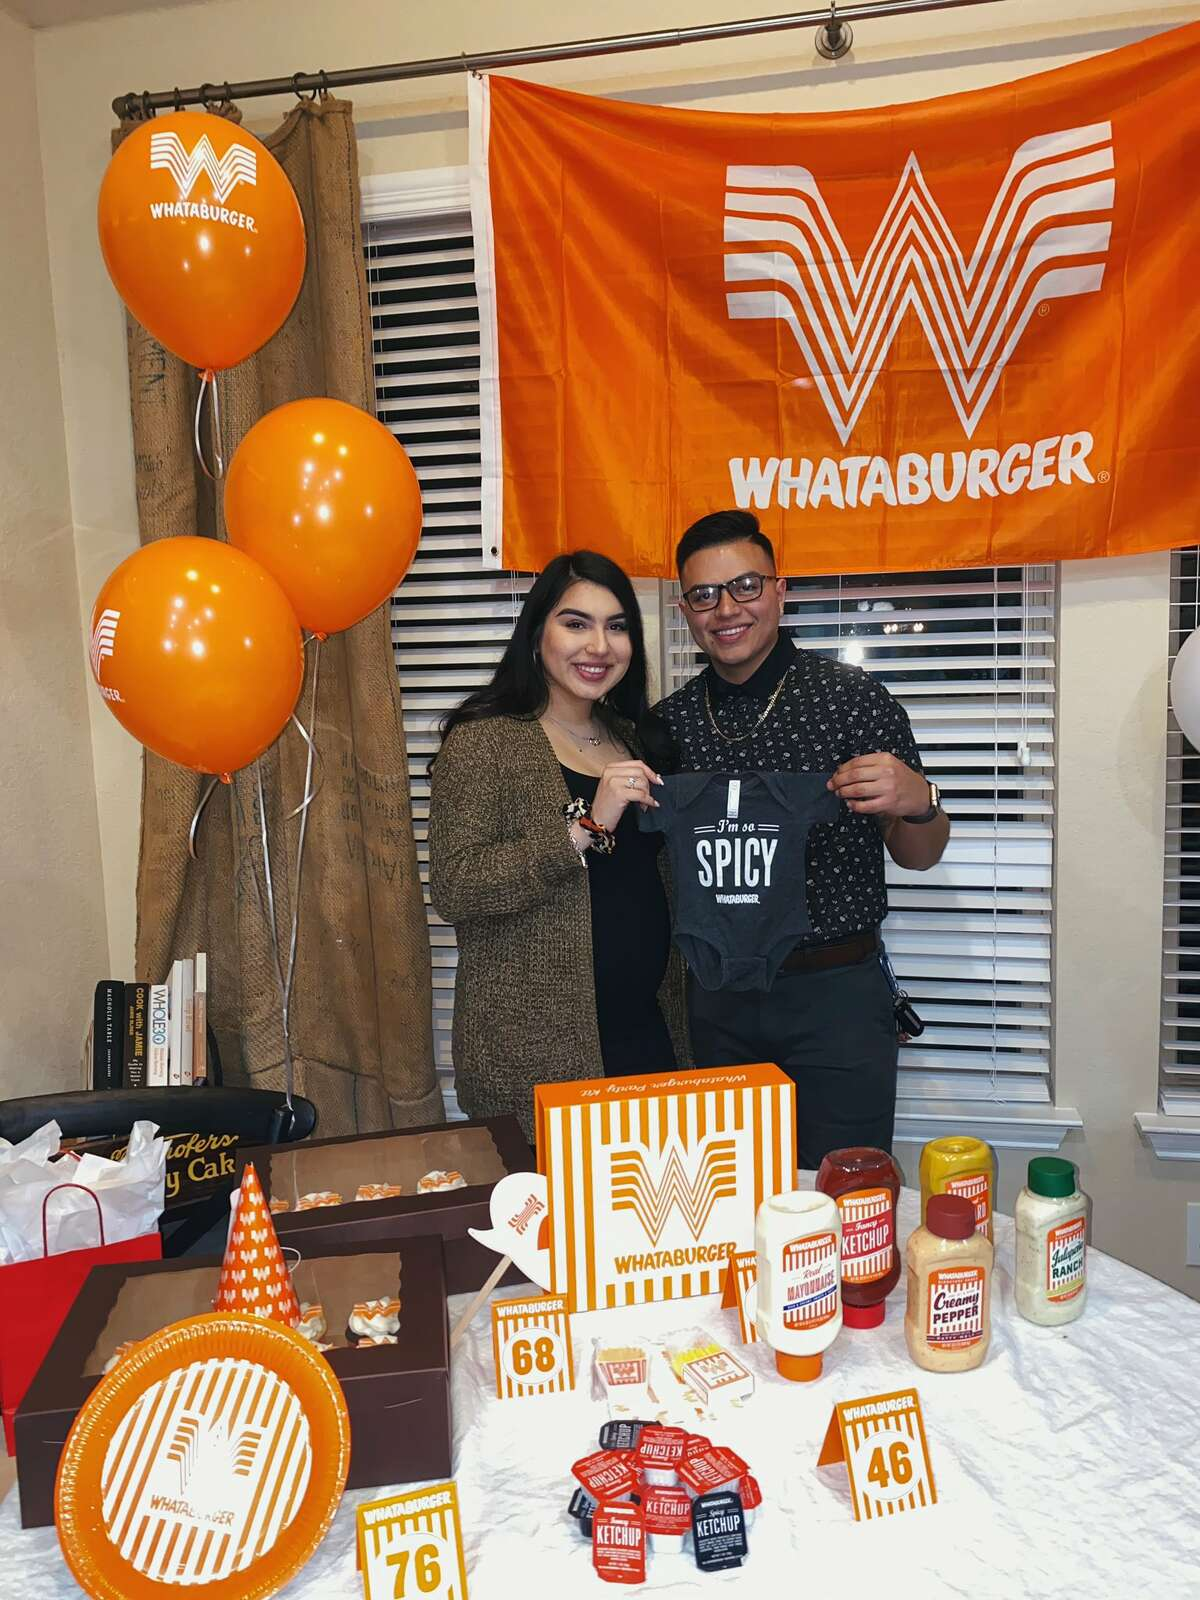 San Antonio couple Izzy Castro and Daniel Castilleja decided to throw a gender reveal party around what their baby loves to eat: Whataburger.